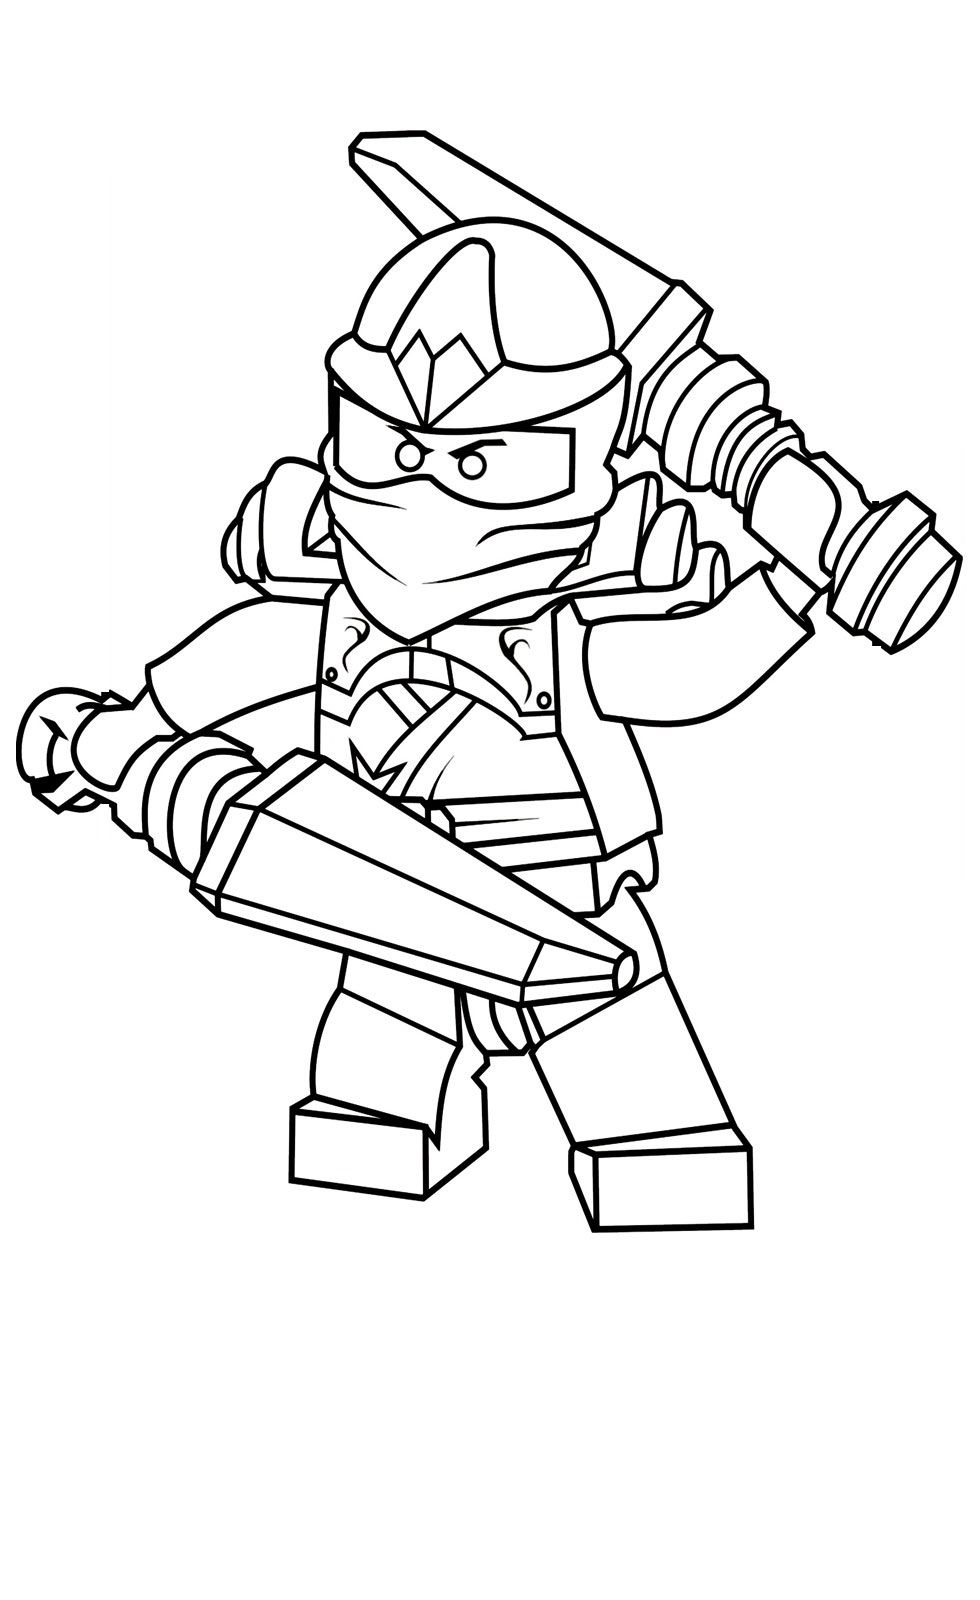 Free Printable Ninjago Coloring Pages For Kids Lego